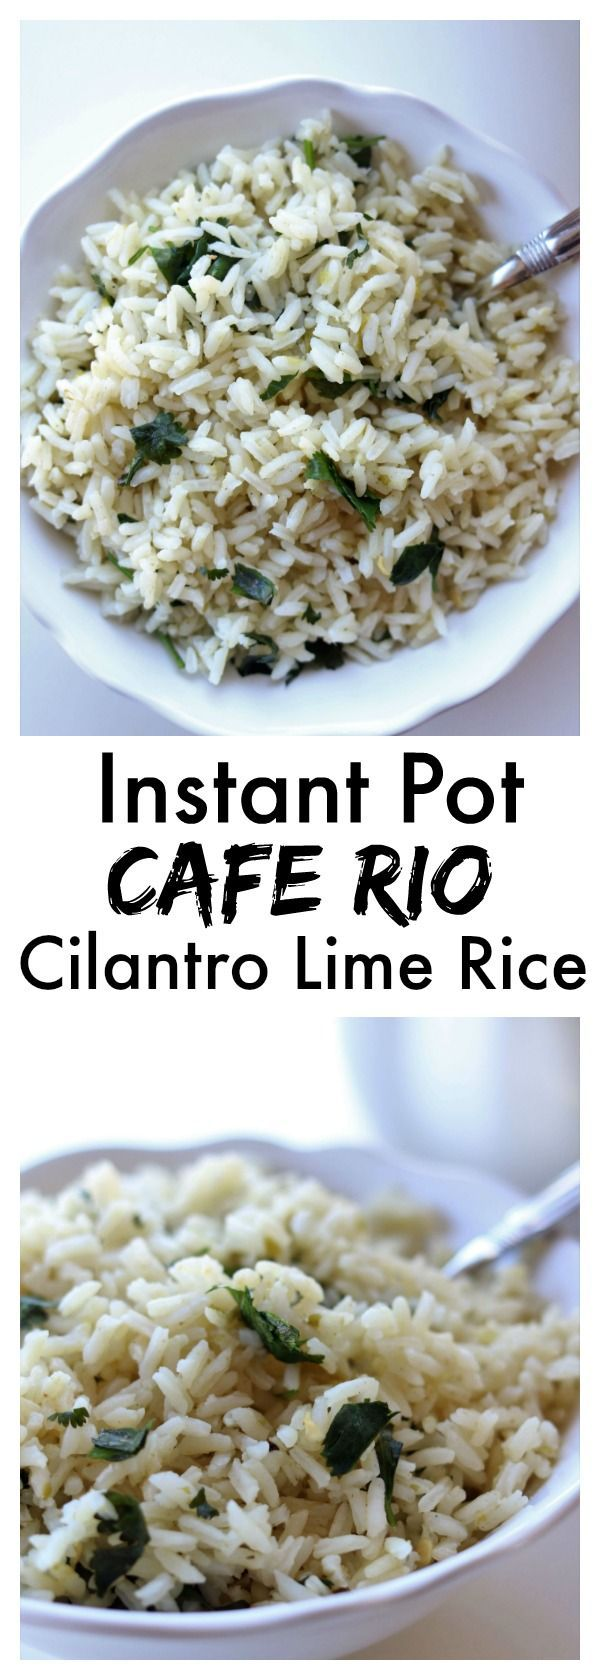 Instant Pot Cafe Rio Cilantro Lime Rice–this quickly cooked seasoned rice made in you pressure cooker is just like Cafe Rio's and it makes the perfect addition to any Mexican dish for dinner.